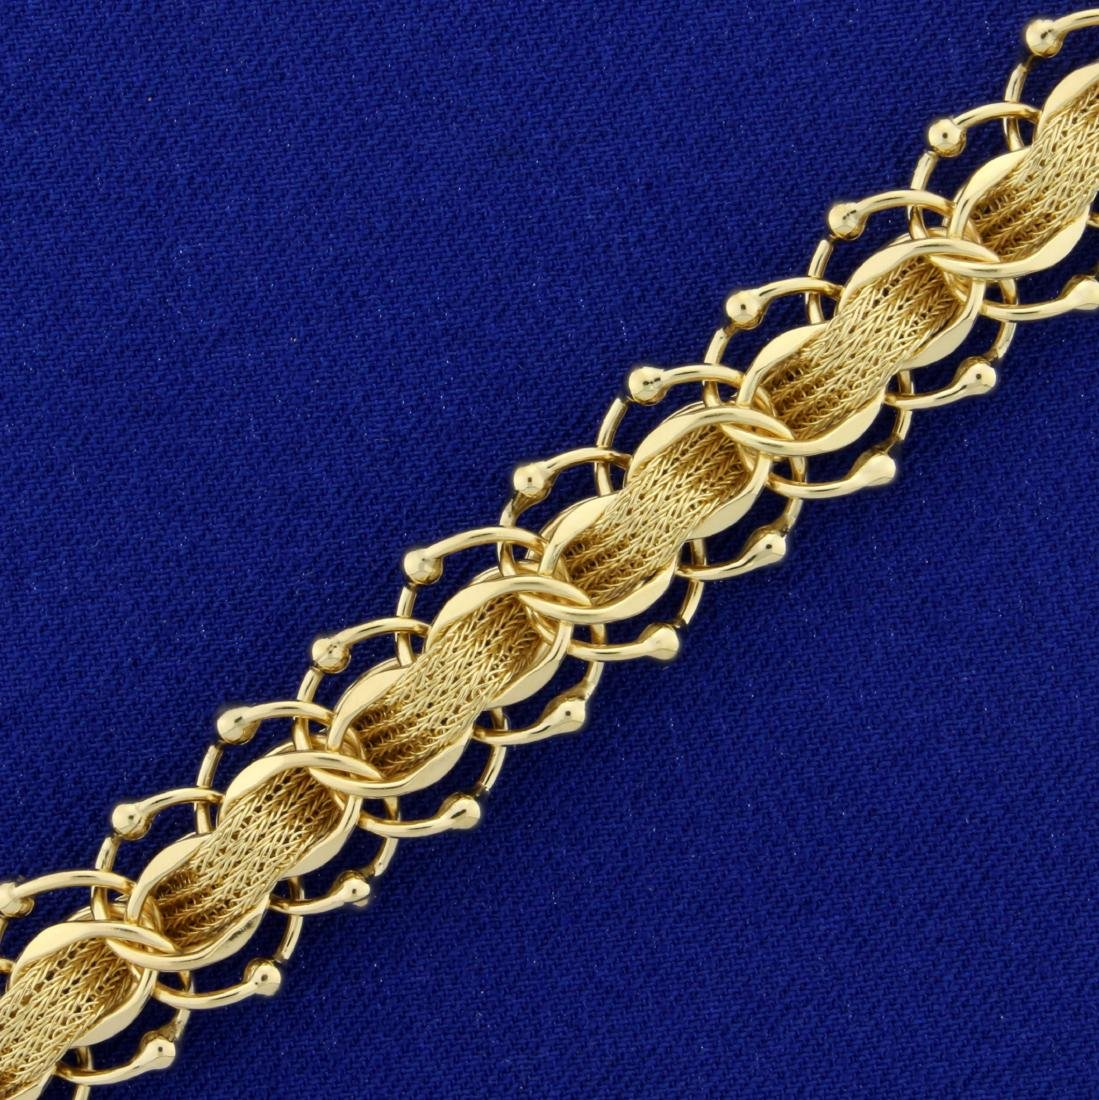 Unique Woven Style Charm Bracelet in 14K Yellow Gold - 2